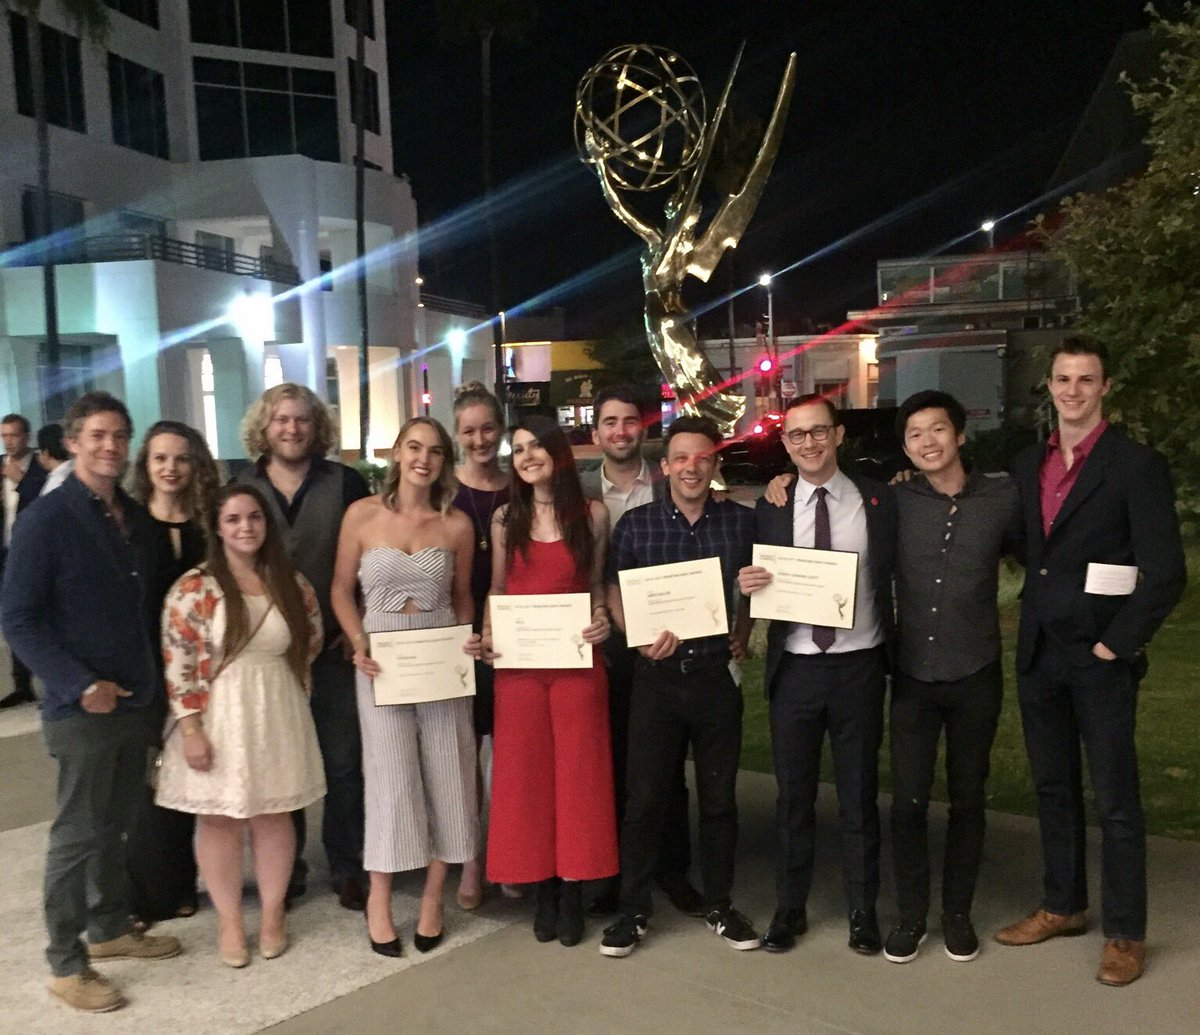 'Twas a lovely evening w/ the @hitRECord team celebrating our Emmy nomination. @tvacadimpg https://t.co/pEswdHX3C1